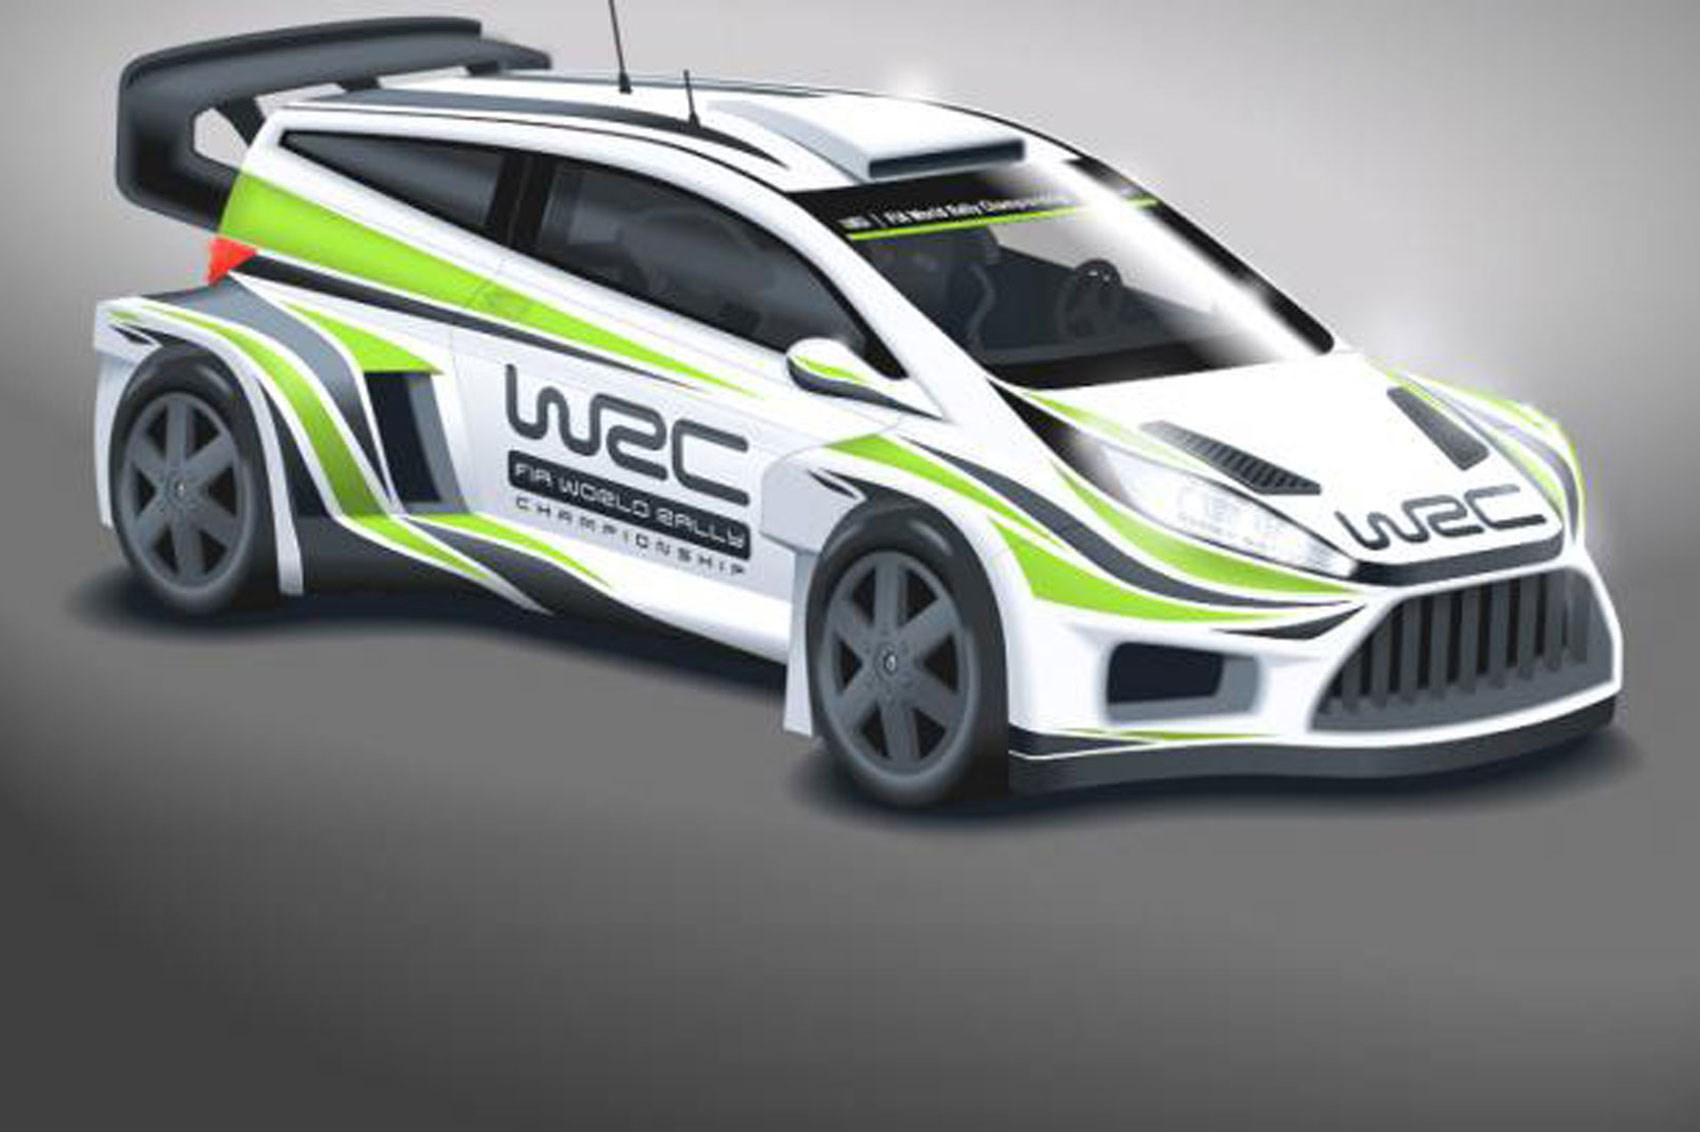 Ultrablogus  Seductive Wild New Look For Wrc Cars In  By Car Magazine With Heavenly Wrc Cars Will Get Wider Bodies Bigger Wings And More Power For  With Enchanting Interior Color Codes Also Fiat Linea Interior Images In Addition Bmw  Series Interior Pictures And  Infiniti I Interior As Well As Mercedes Interior Trim Parts Additionally Equus Interior From Carmagazinecouk With Ultrablogus  Heavenly Wild New Look For Wrc Cars In  By Car Magazine With Enchanting Wrc Cars Will Get Wider Bodies Bigger Wings And More Power For  And Seductive Interior Color Codes Also Fiat Linea Interior Images In Addition Bmw  Series Interior Pictures From Carmagazinecouk